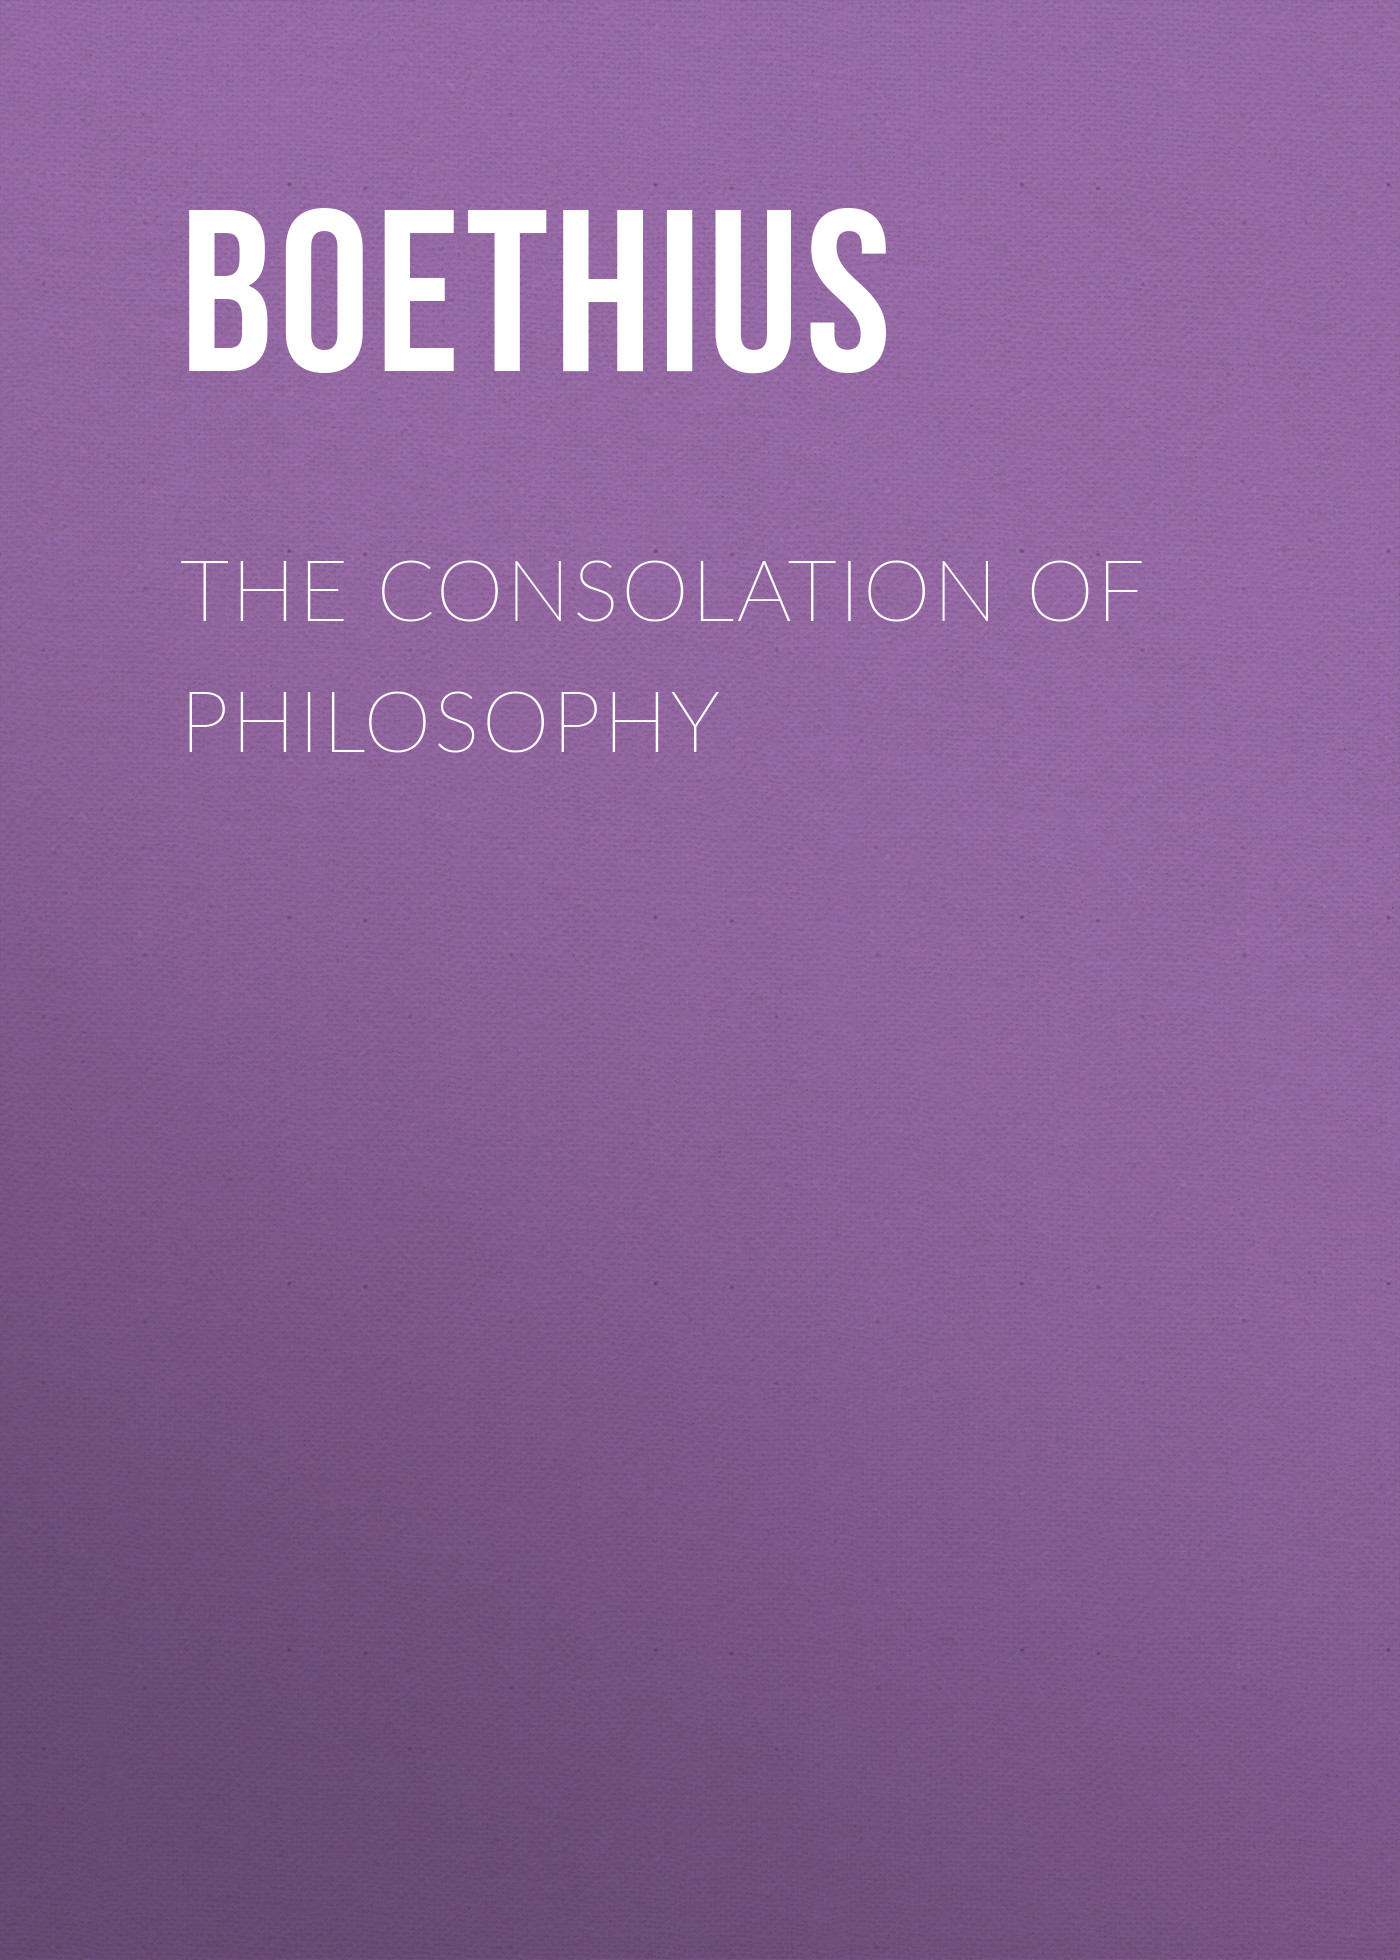 Boethius The Consolation of Philosophy